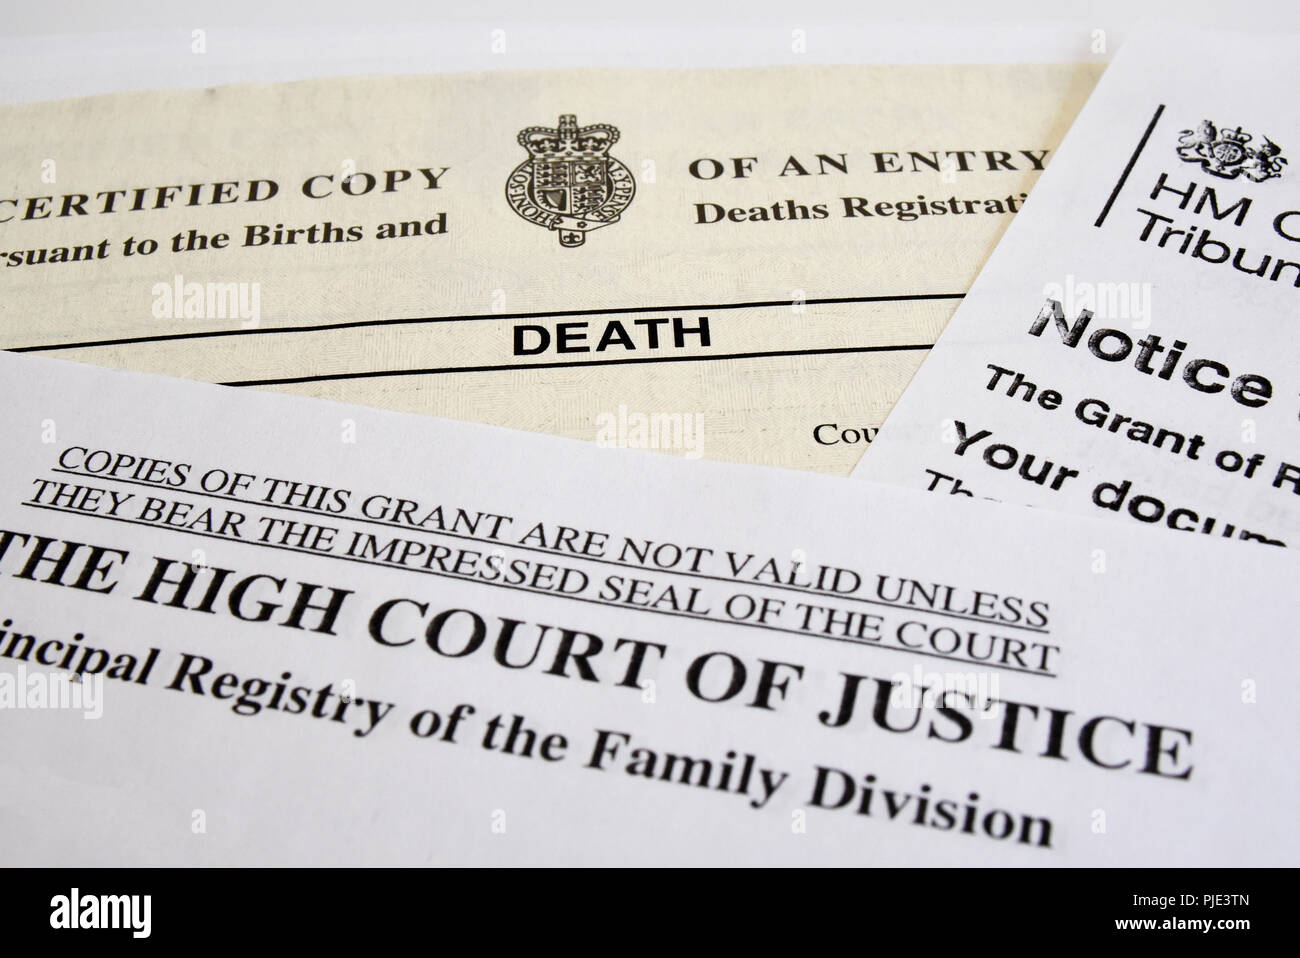 Death Certificate Papers Paperwork Documents The High Court Of